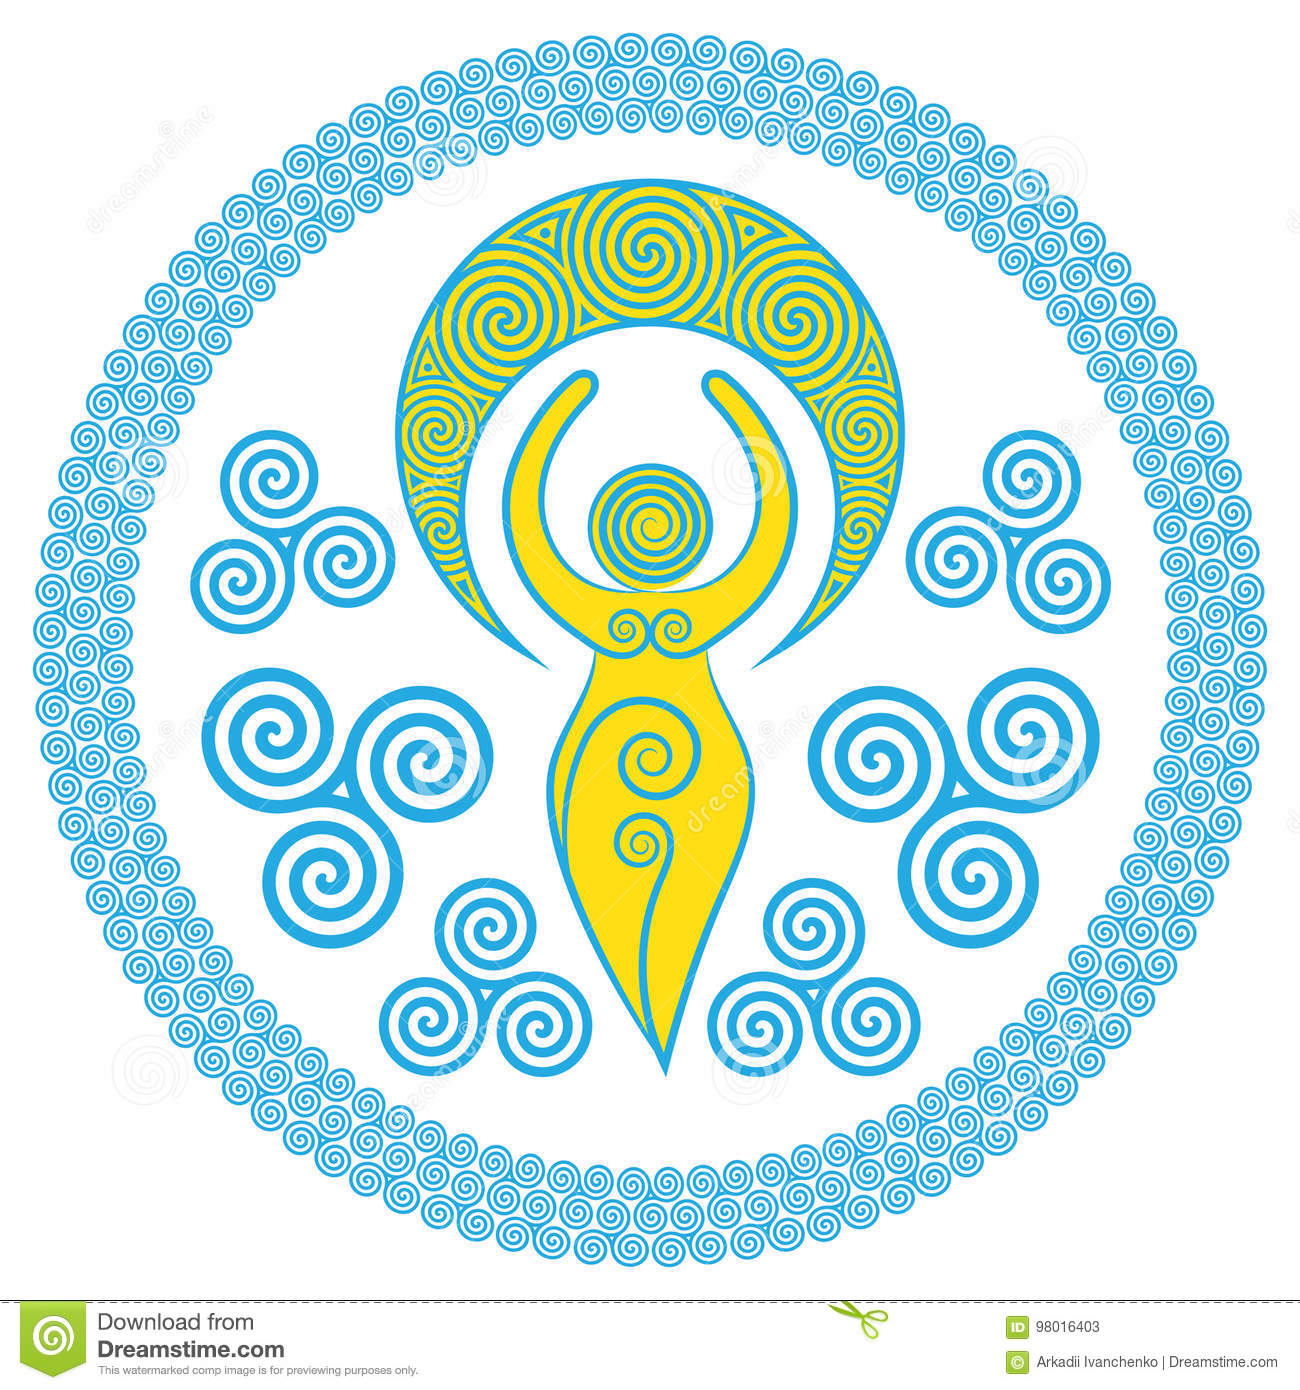 Ancient Spiral Goddess: This delicate Goddess represents the creative powers of the Divine Feminine, and the never ending circle o